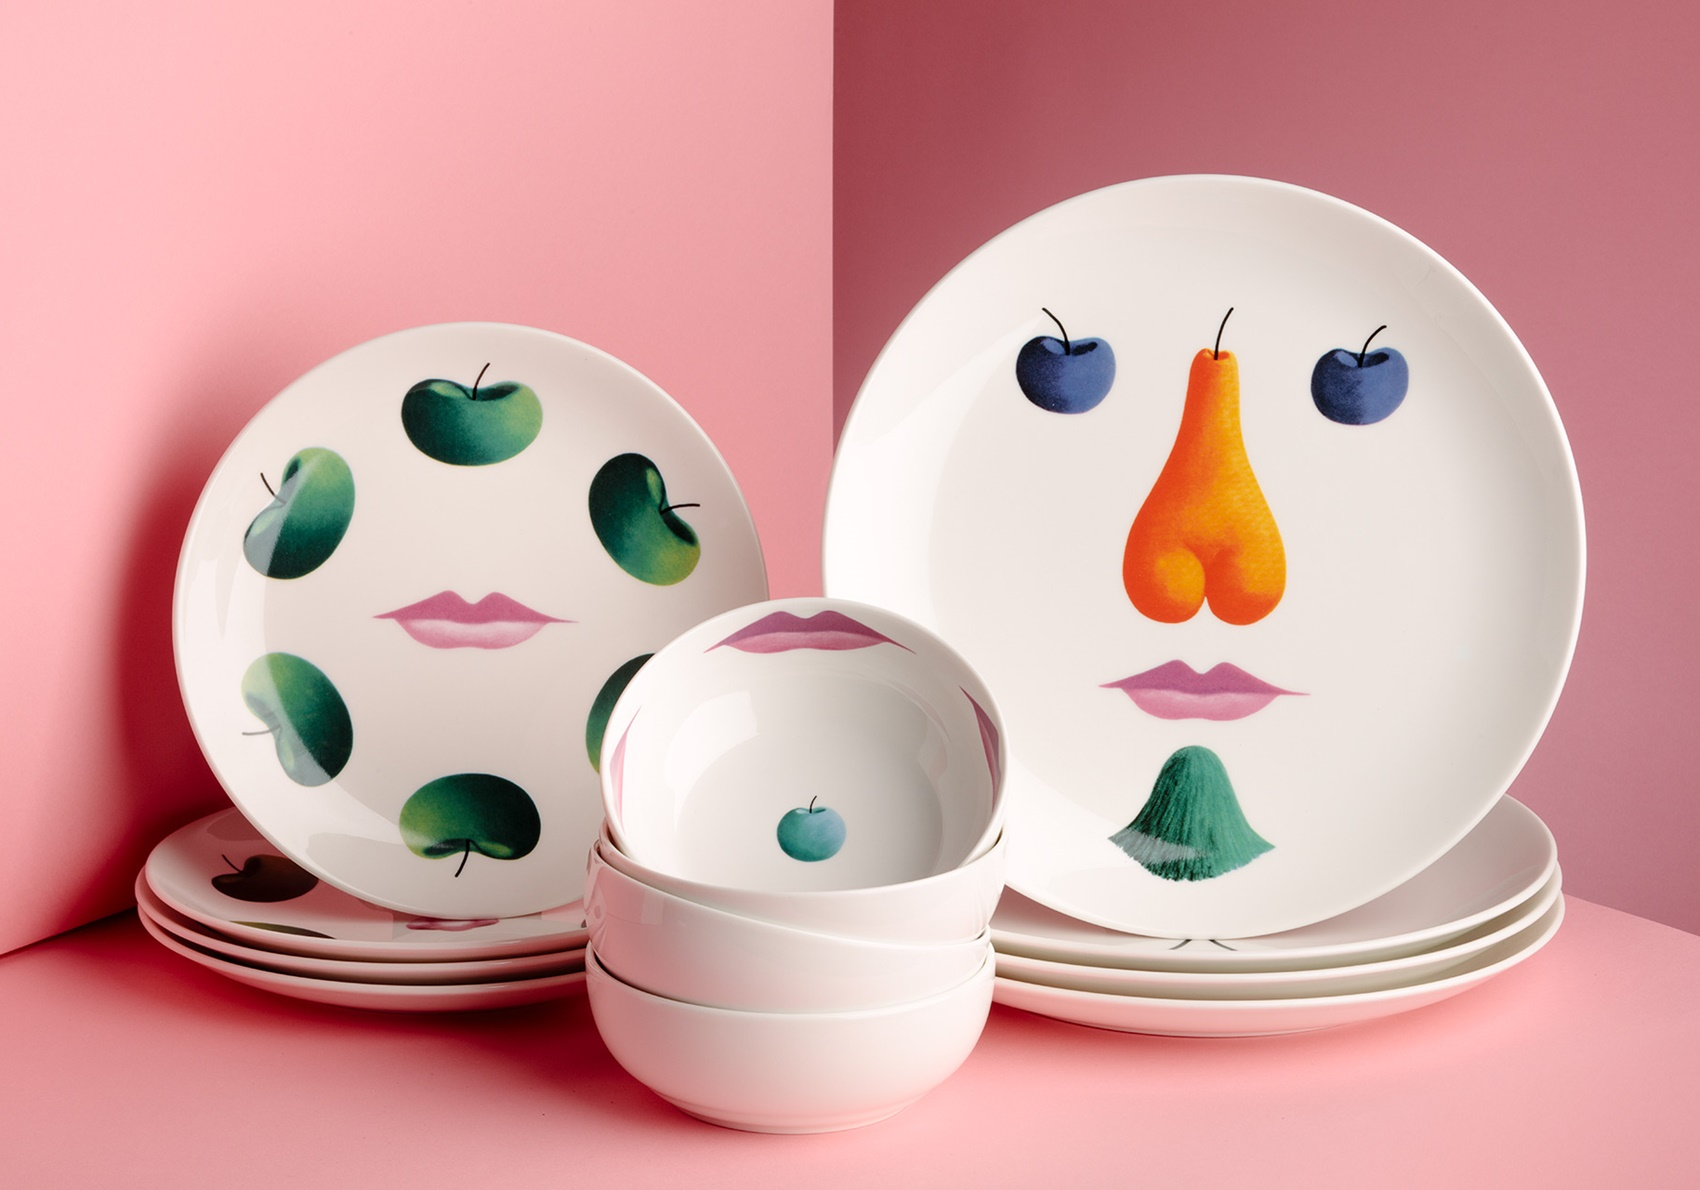 Café Party Dinner Set for 4 – Limited Edition of 100